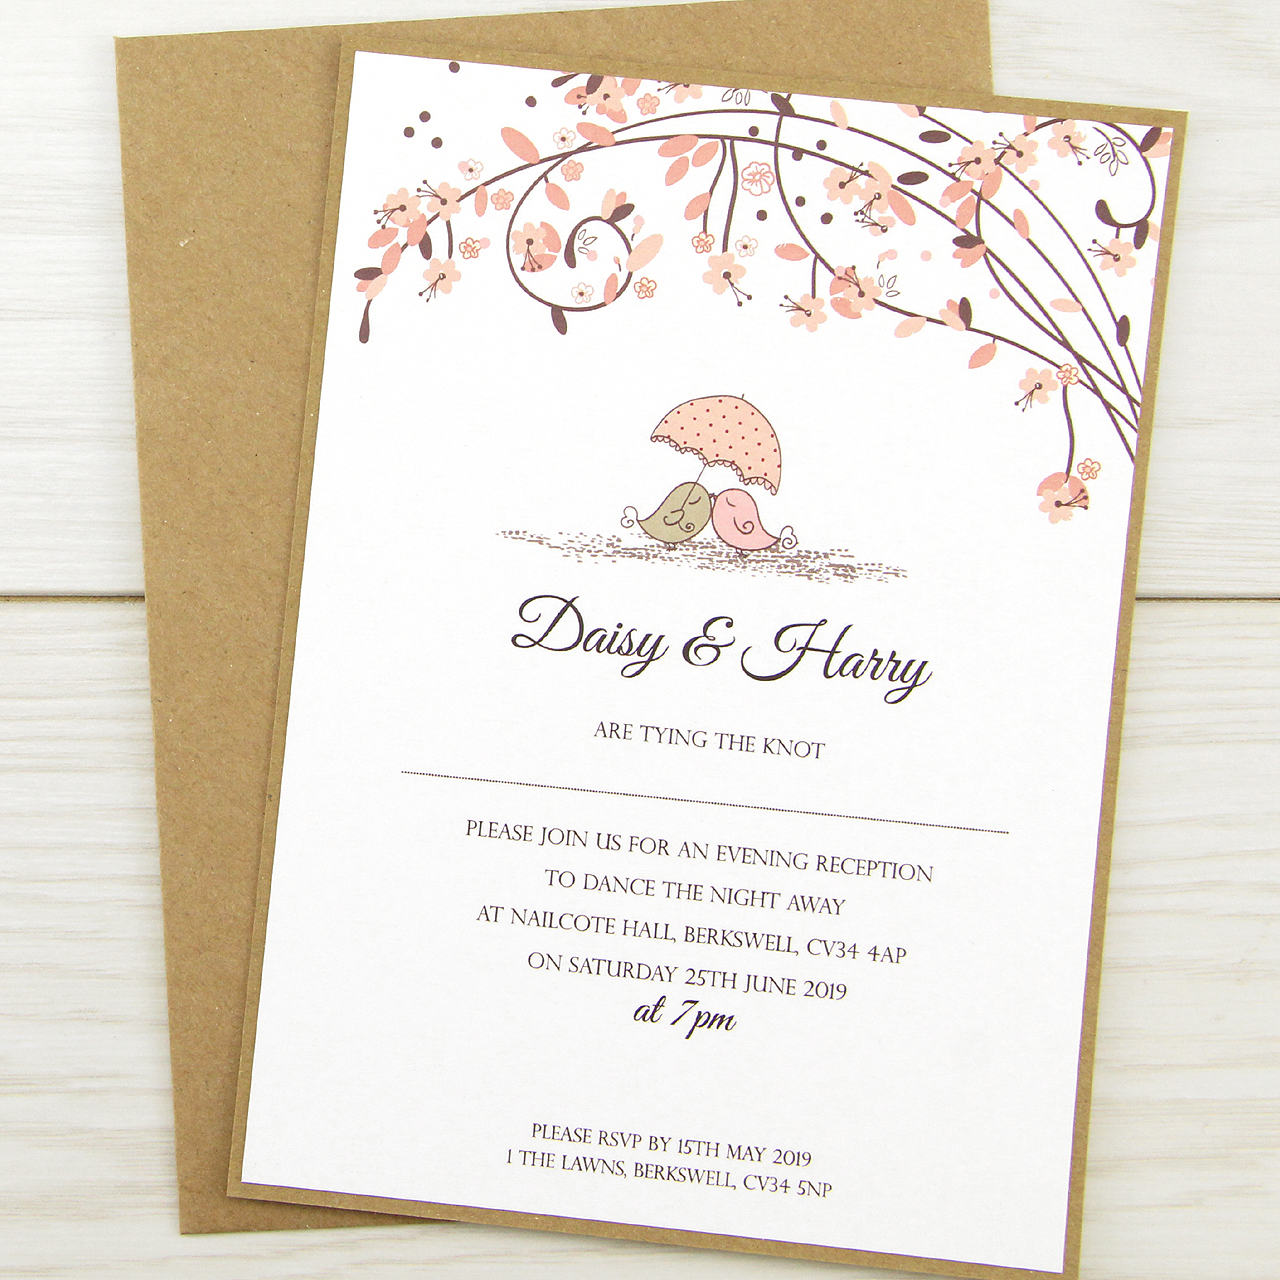 Rustic Wedding Invitations Cheap Uk